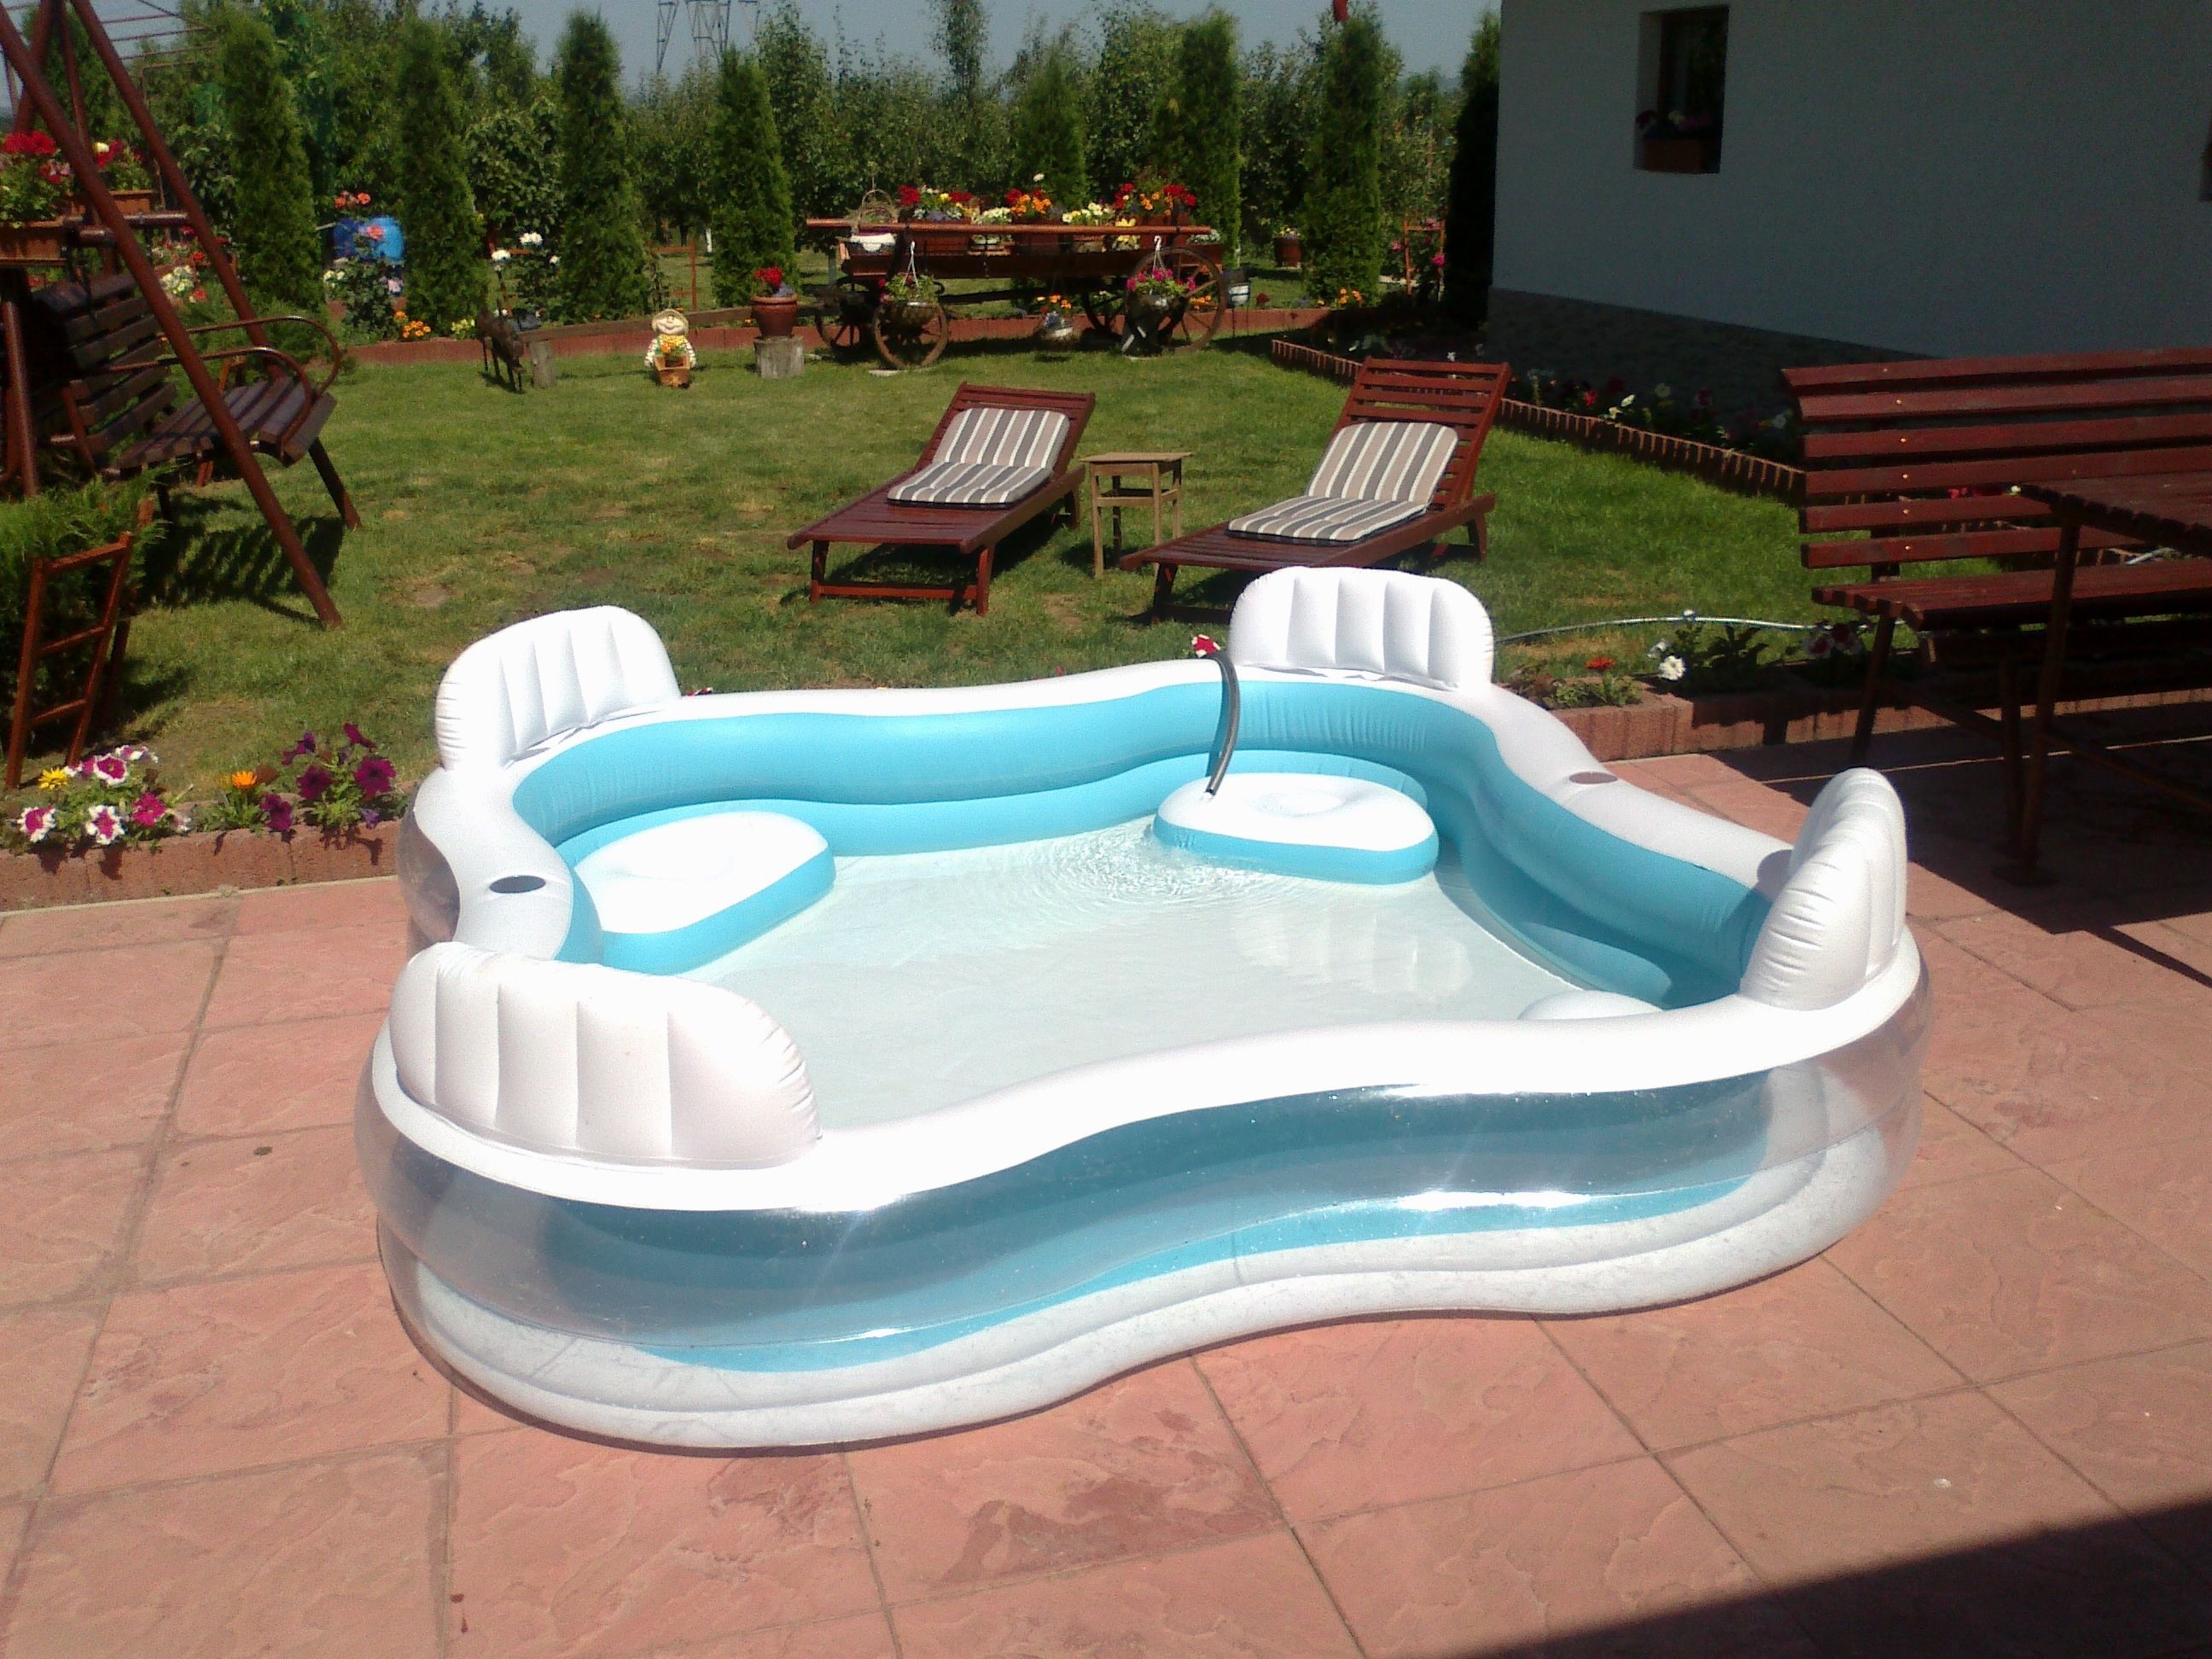 Pool Im Garten Hygiene Kid S Pool No Kids Involved Only We Know Kiddie Pool Cool